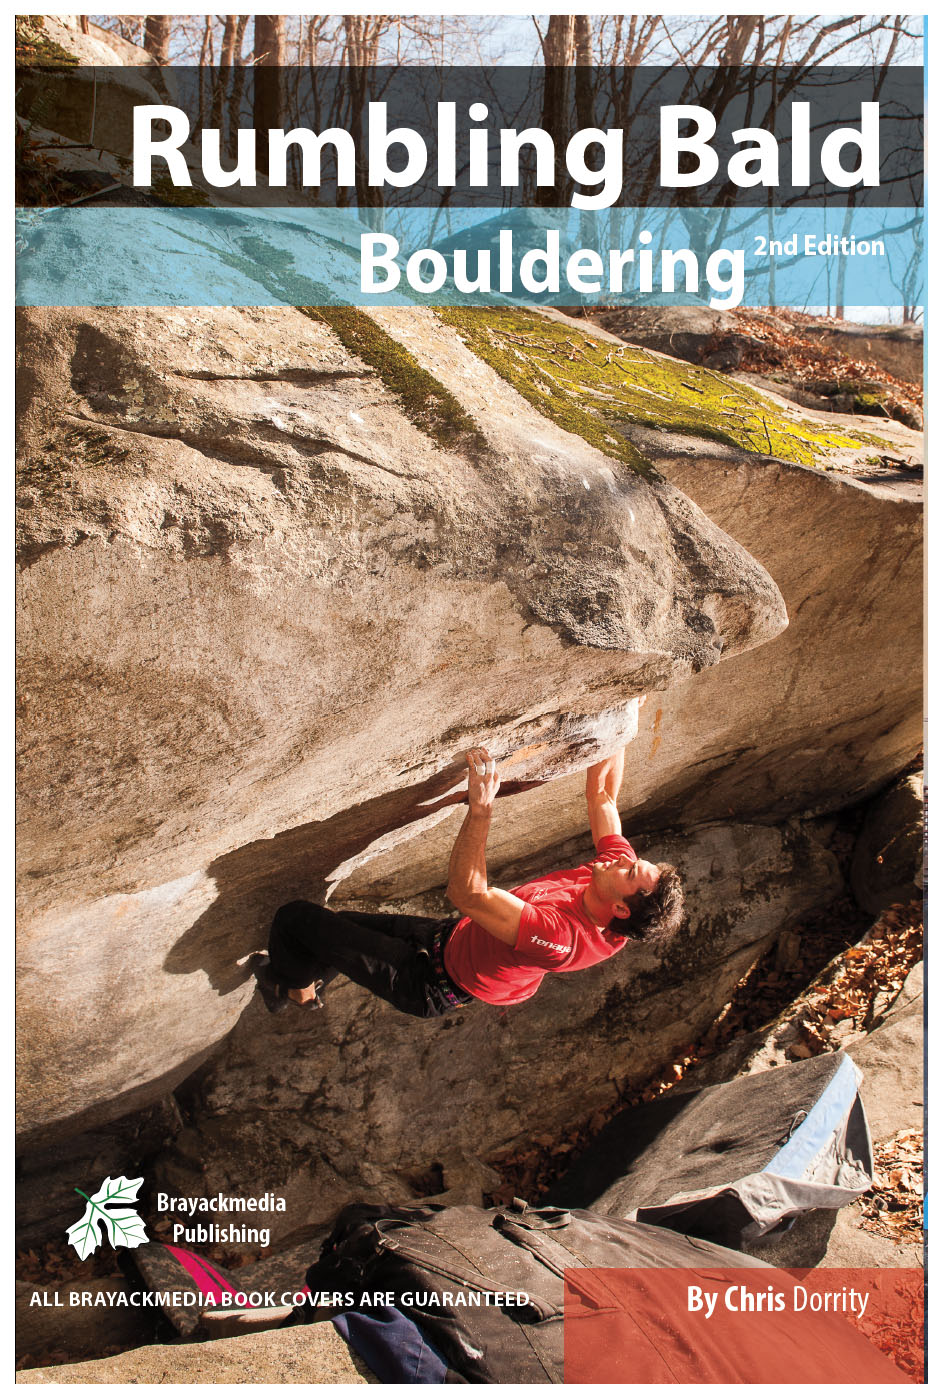 Rumbling Bald Bouldering Guidebook - Near Asheville, North Carolina, Rumbling Bald is an incredible, huge, south facing destination winter crag.This book covers 1,486 problems in 576 pages. The book includes High Quality Maps, Topo Images and Action Images